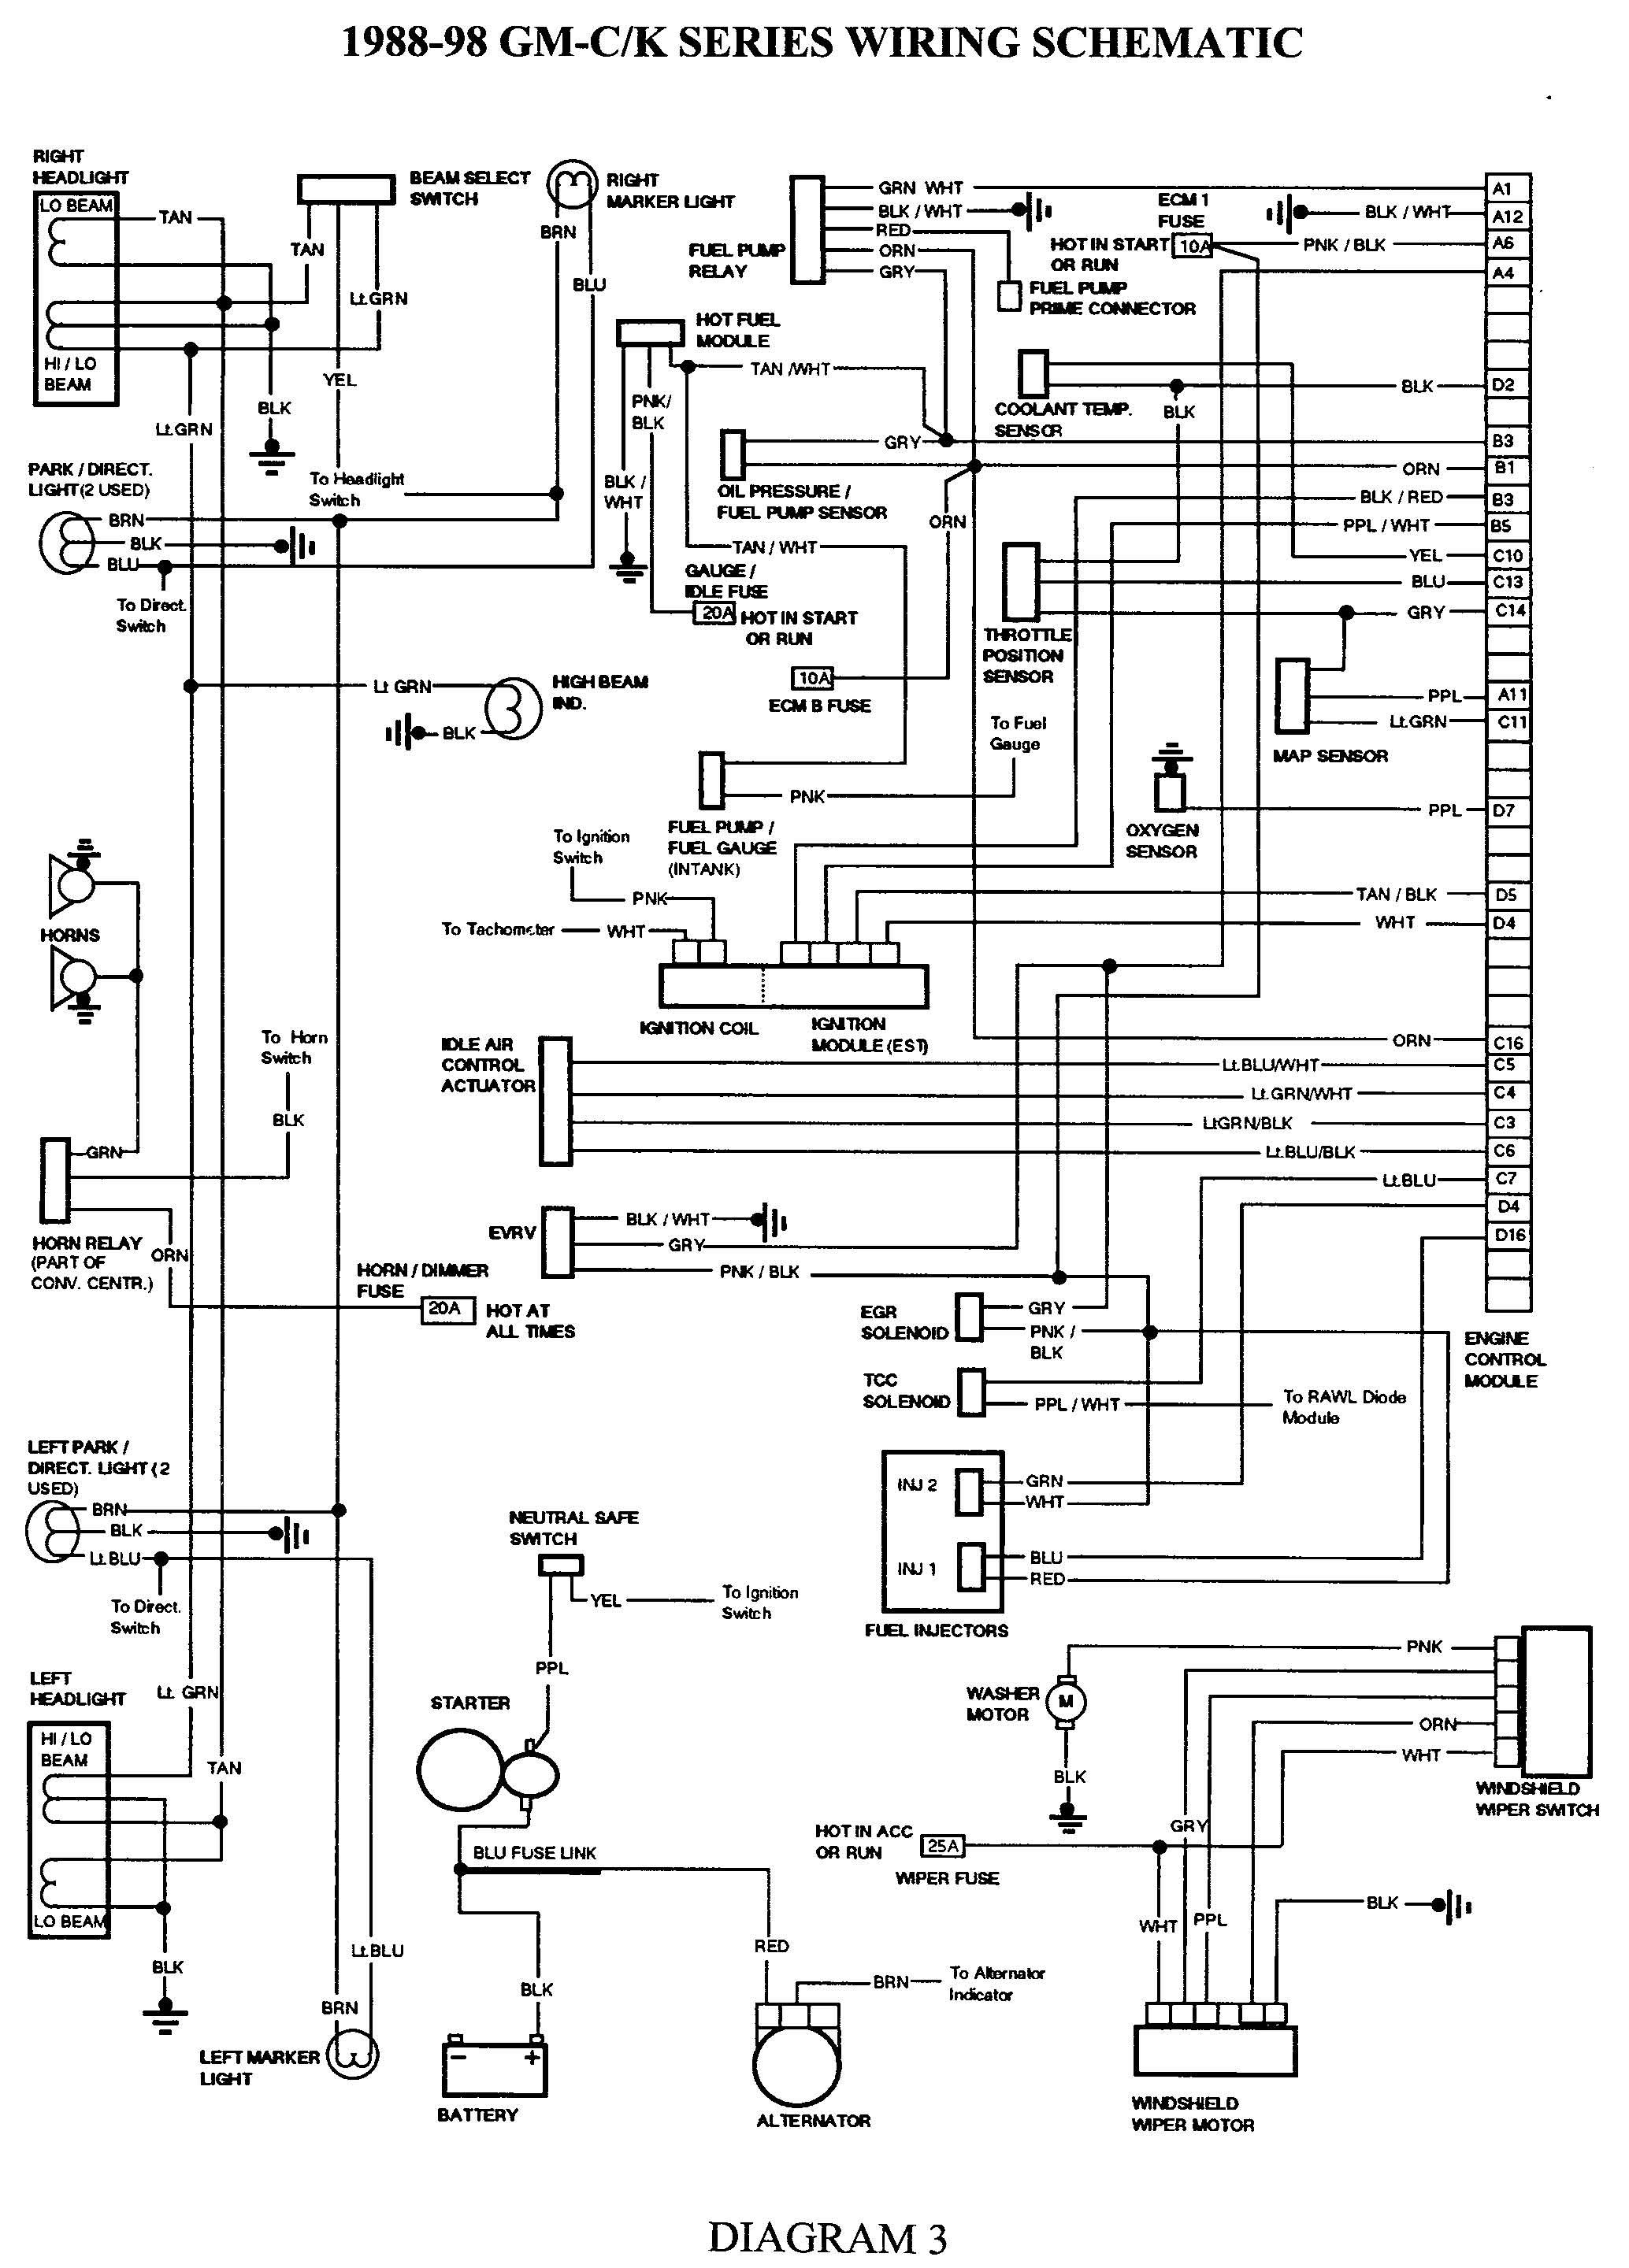 cummins 4bt wiring diagram wiring library1985 chevy alternator wiring detailed schematics diagram rh keyplusrubber com 4bt [ 2068 x 2880 Pixel ]